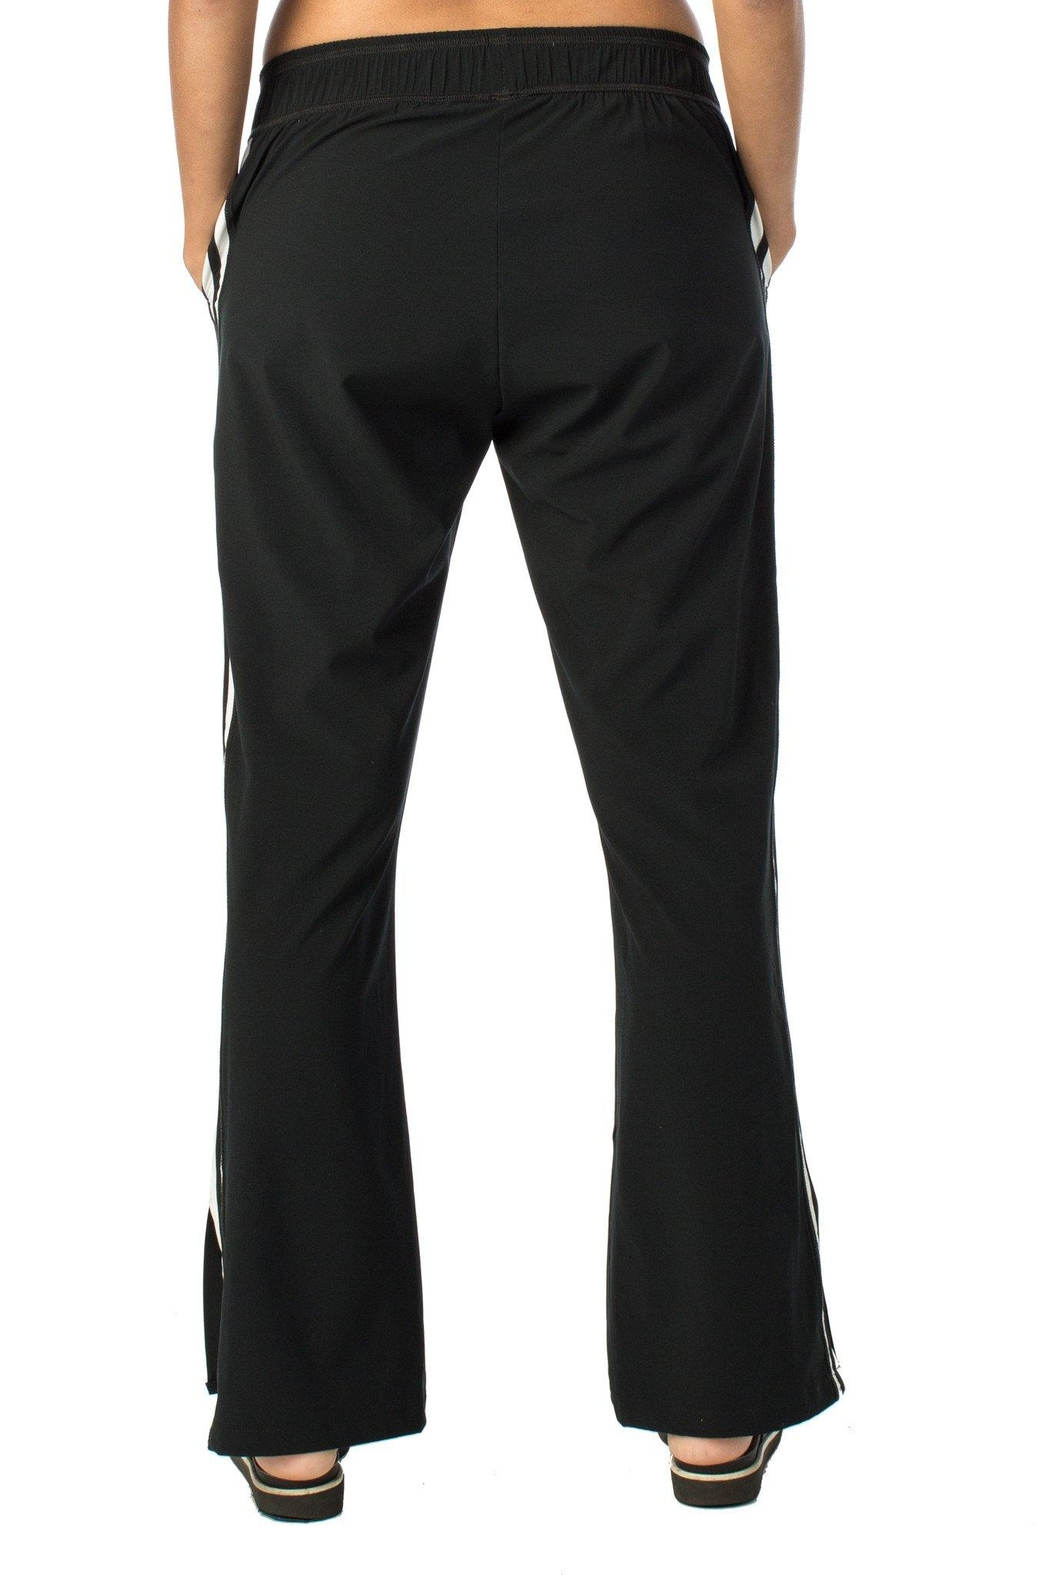 925 FIT Armed &Dangerous Pant - Side Cropped Image